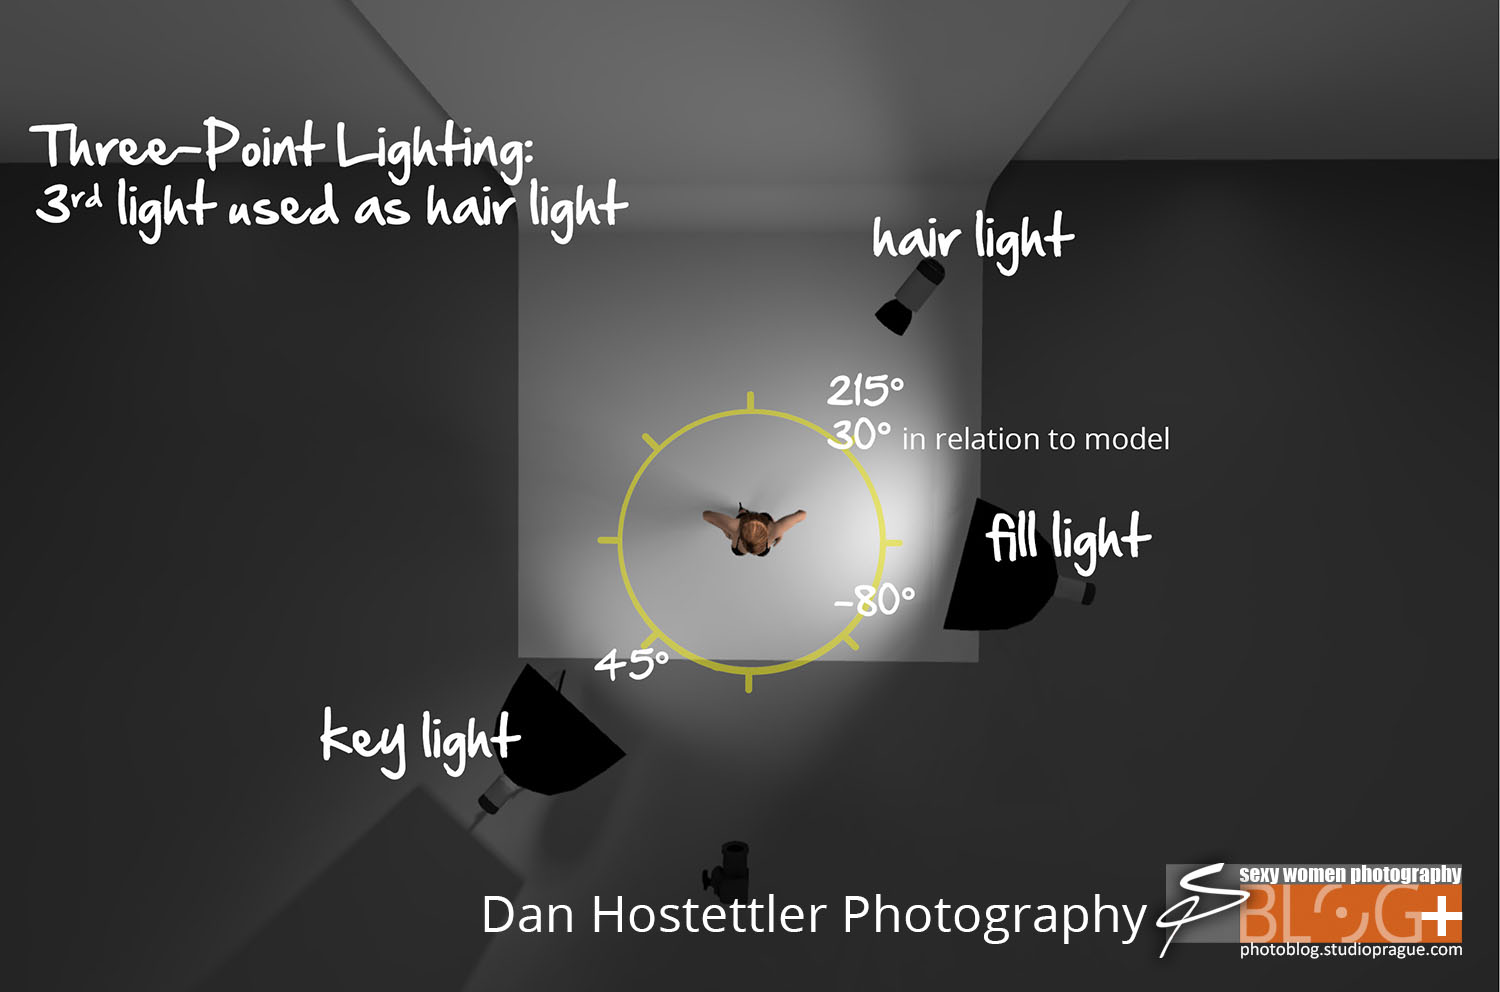 3d 3 point lighting with hair light 2